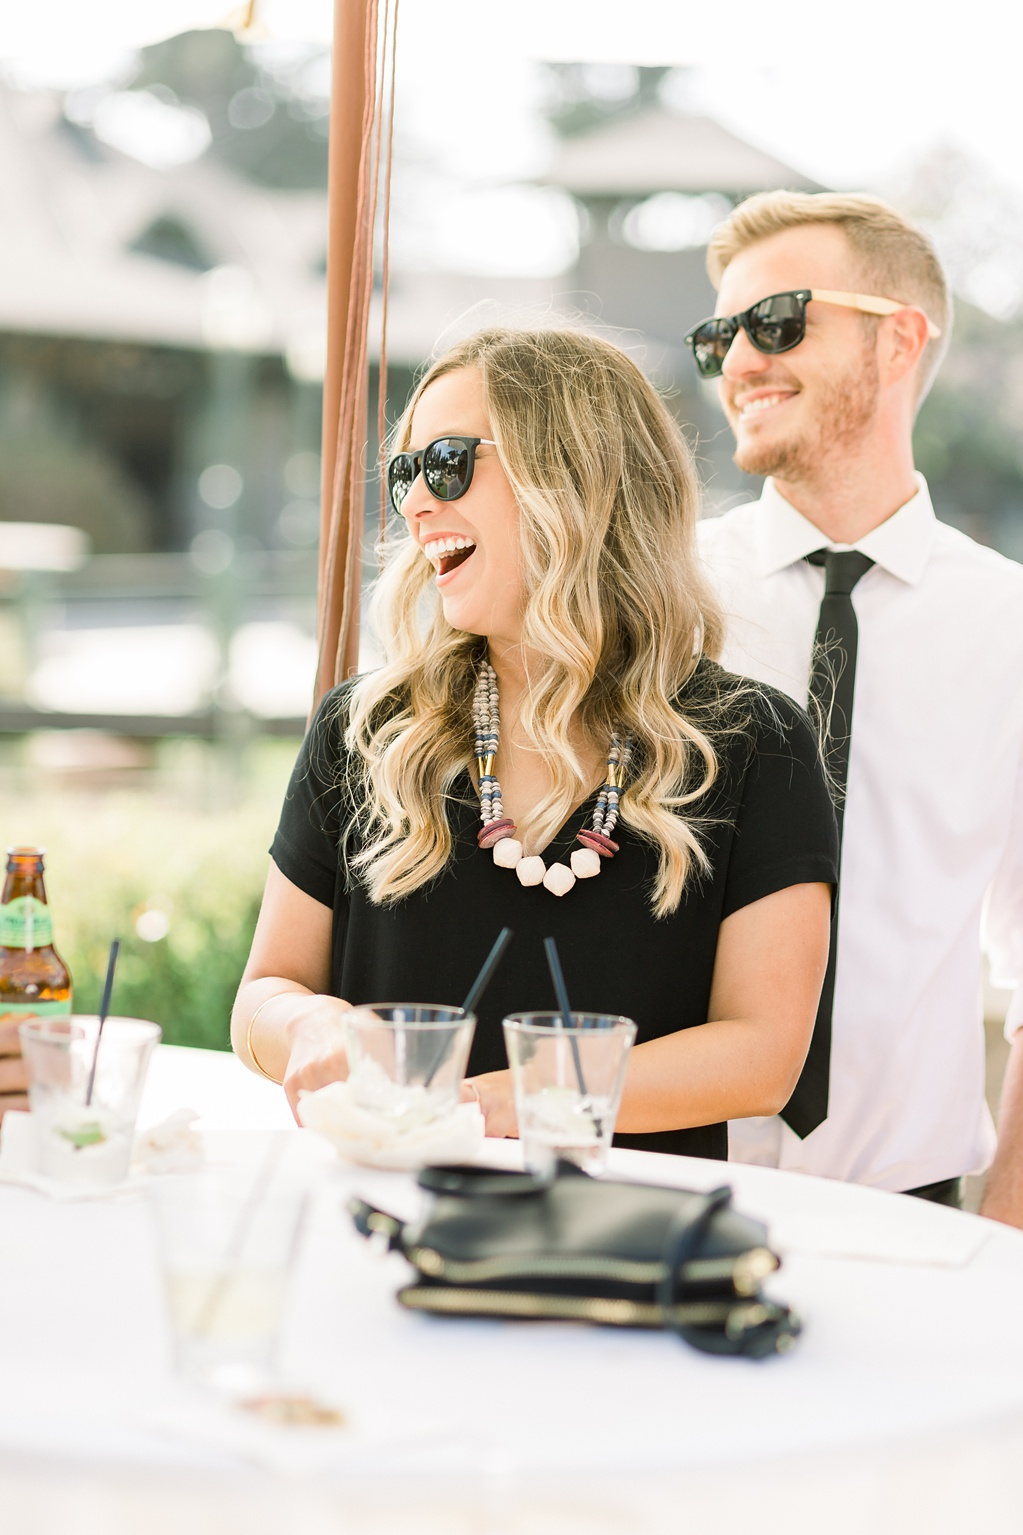 White Barn Inspired Summer Wedding In The Valley of Arroyo Grande, California by Wedding Photographer Madison Ellis. (51)